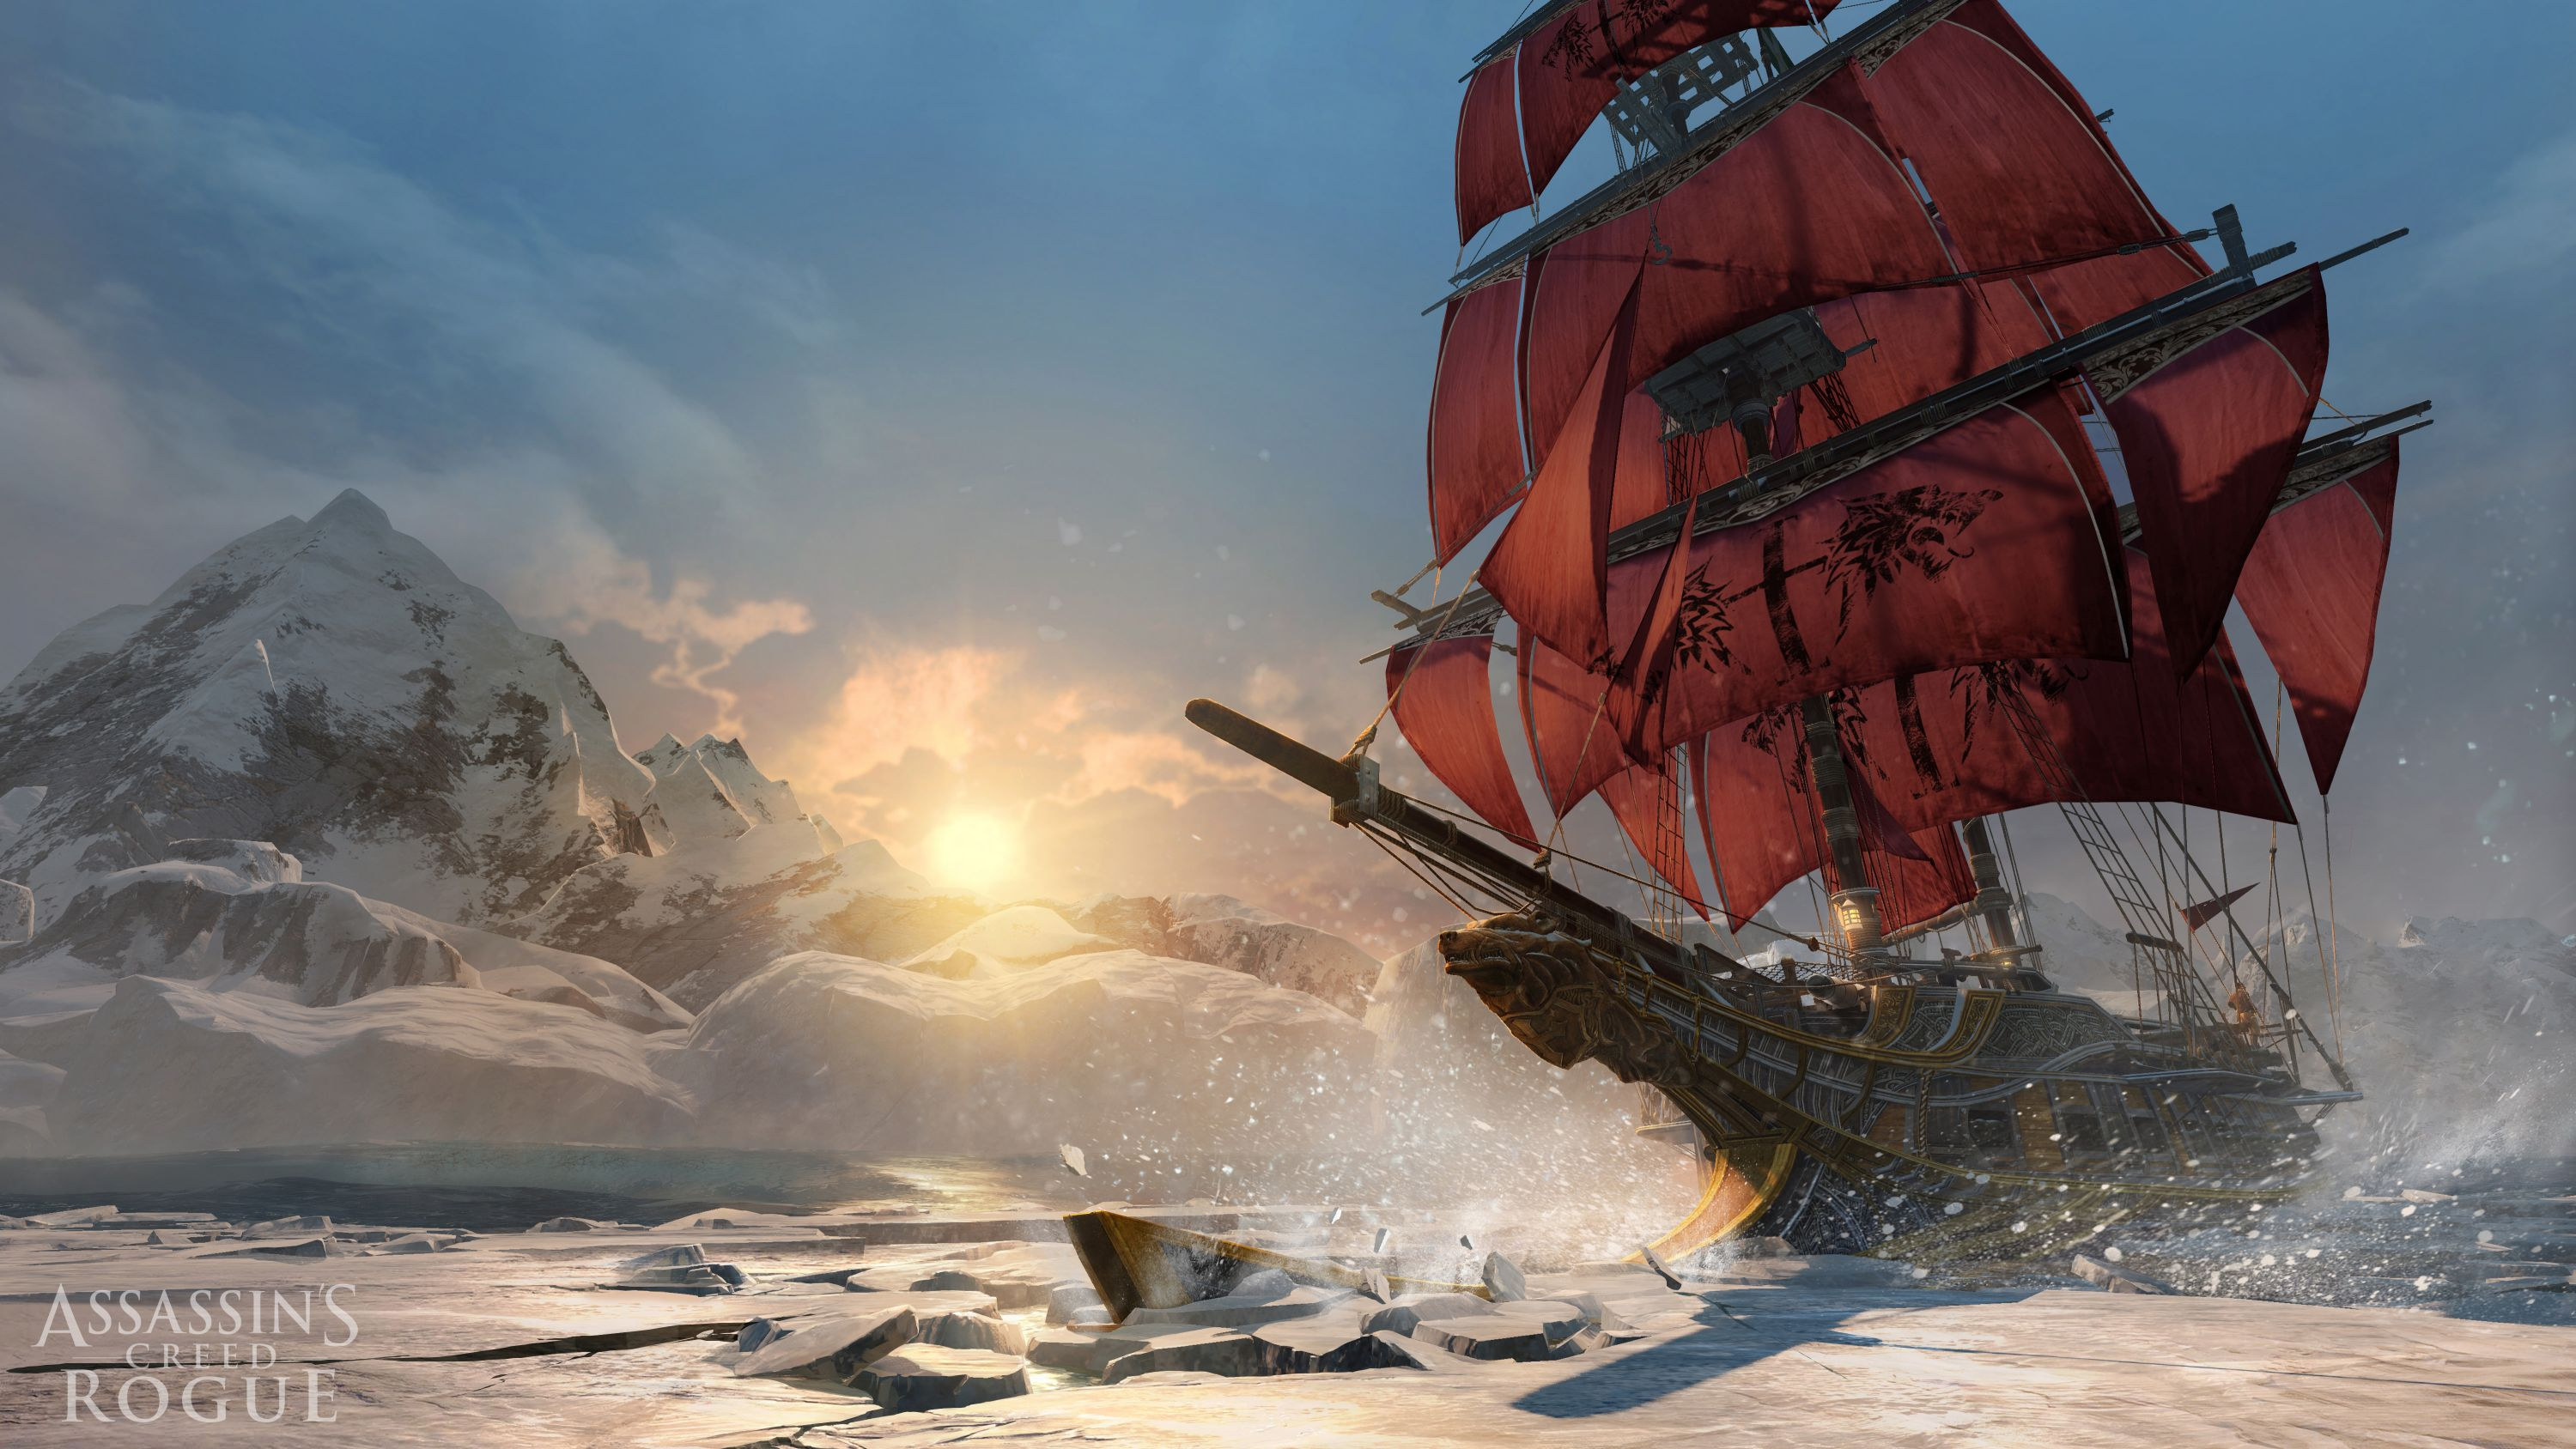 Assassin's Creed: Rogue -  sailing ships will pass you by